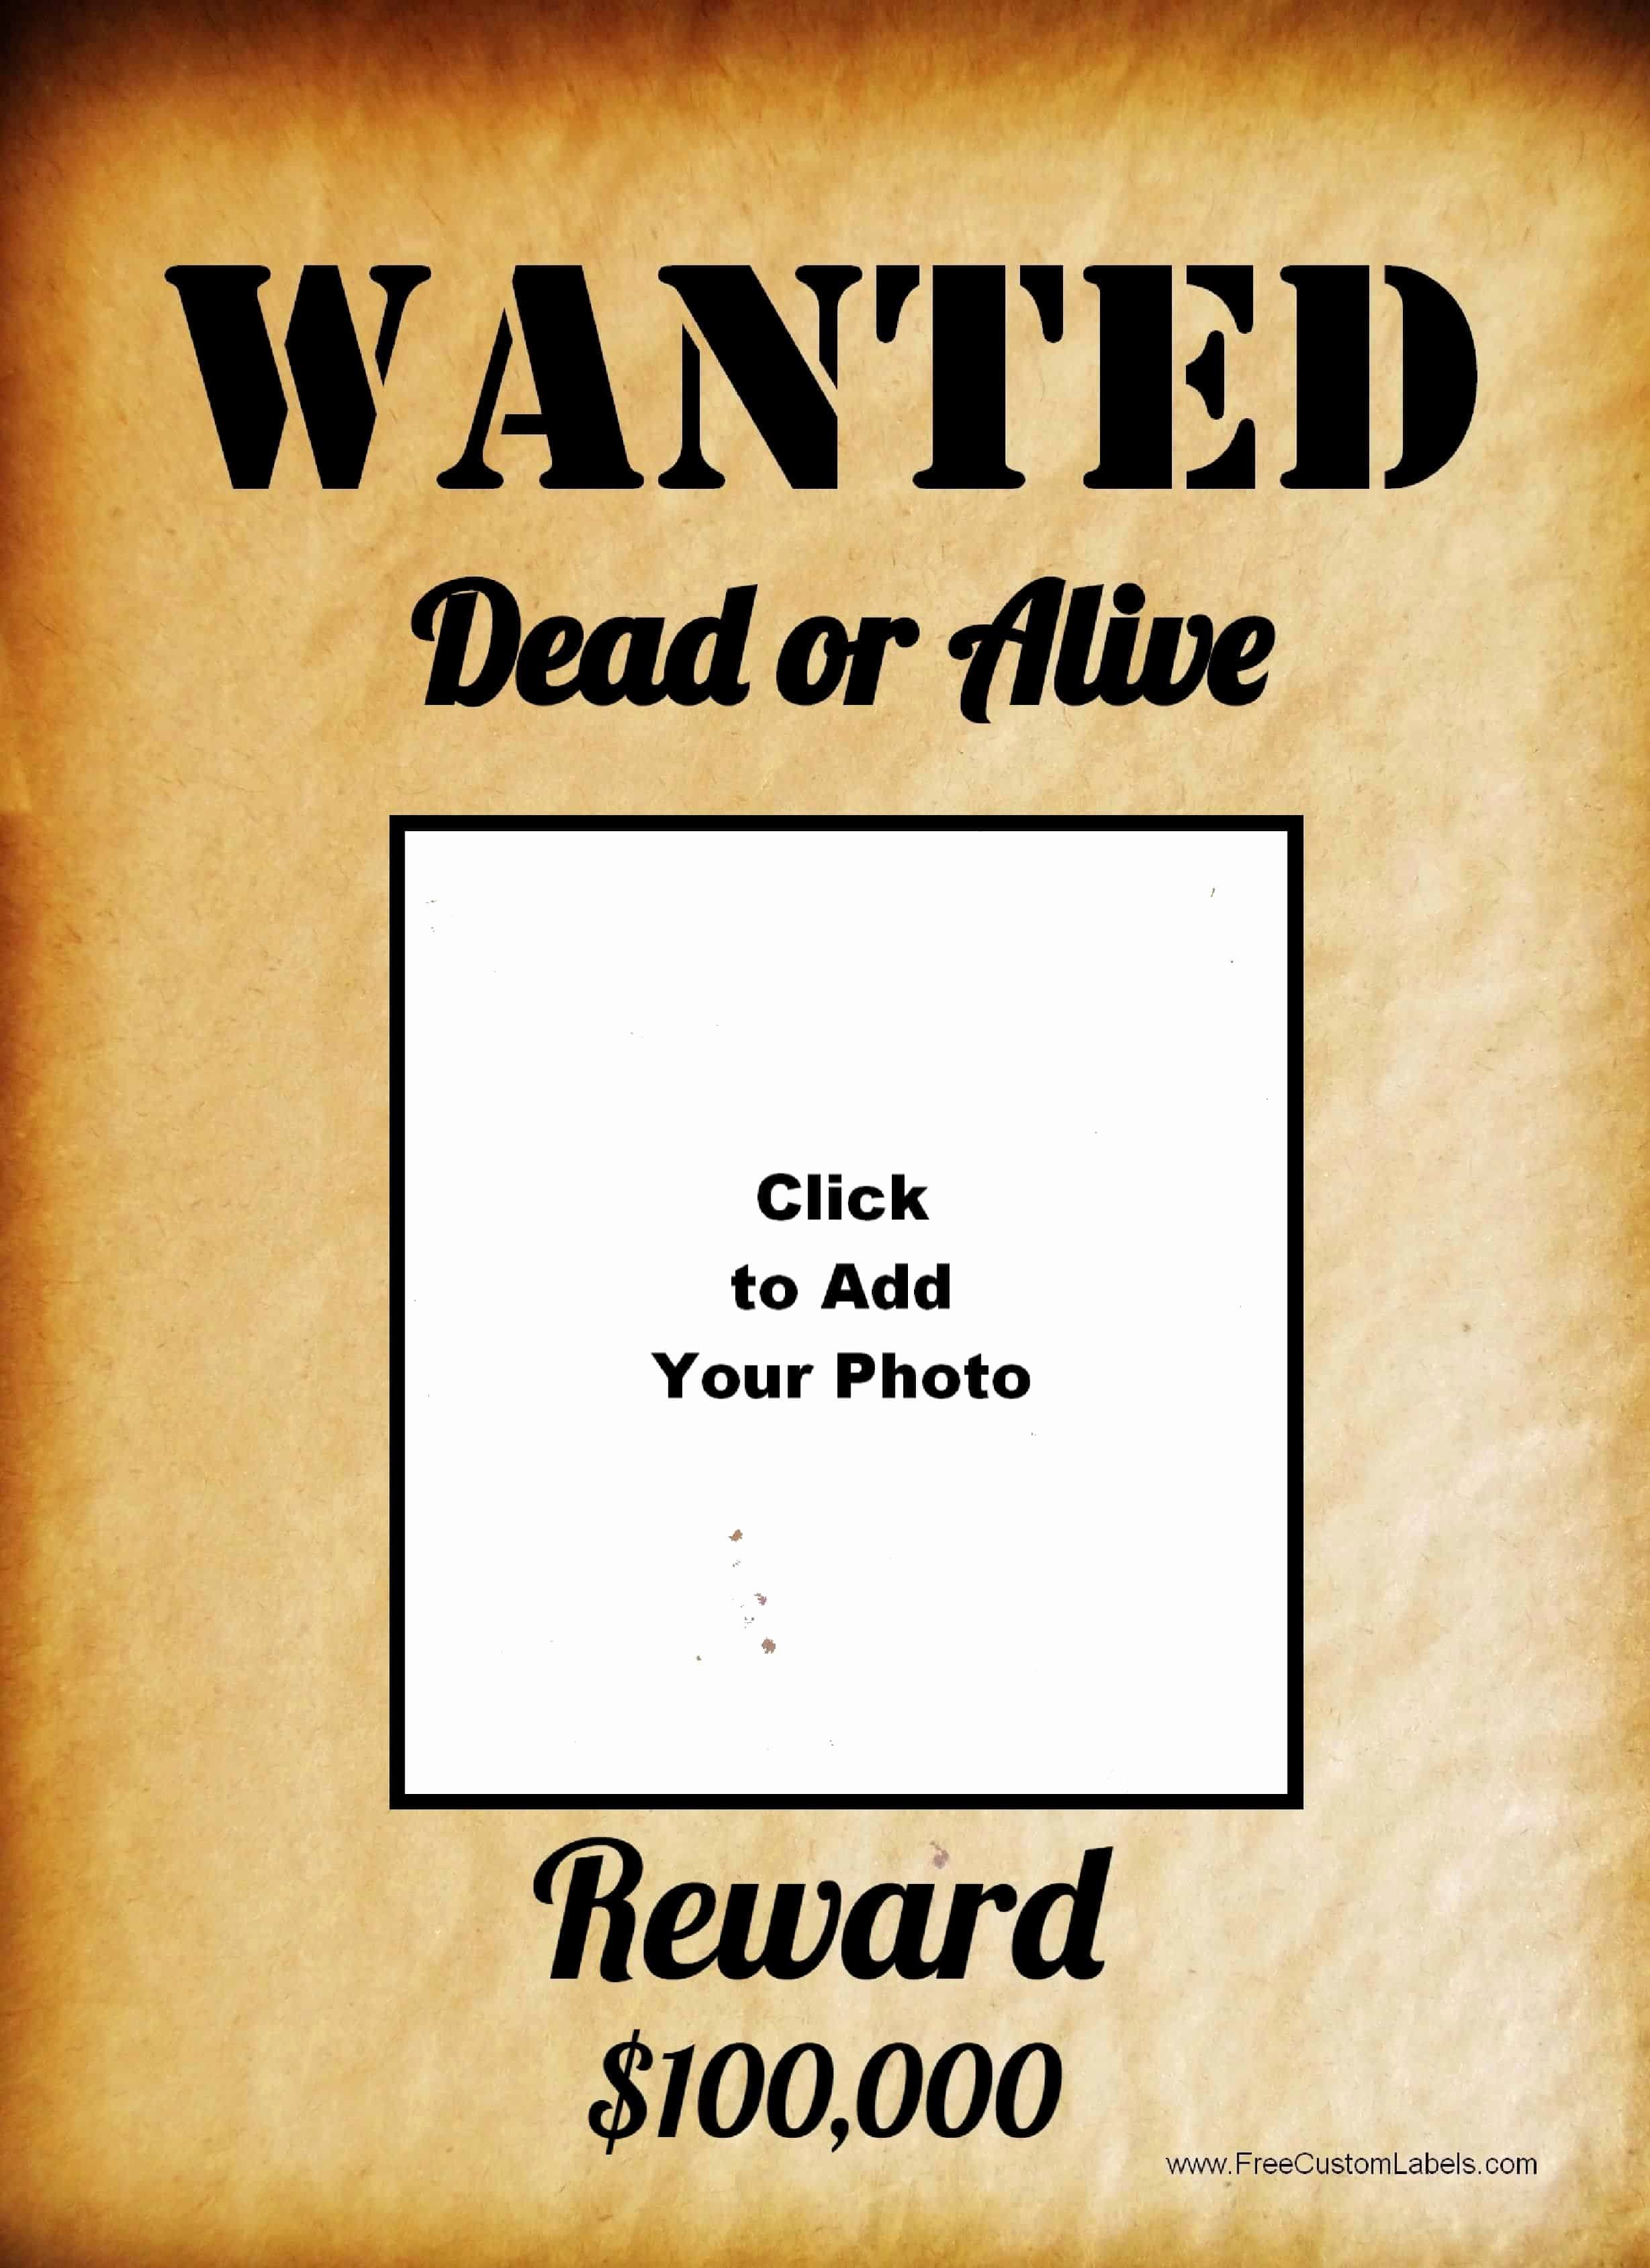 Free Wanted Poster Template Inspirational Free Wanted Poster Maker